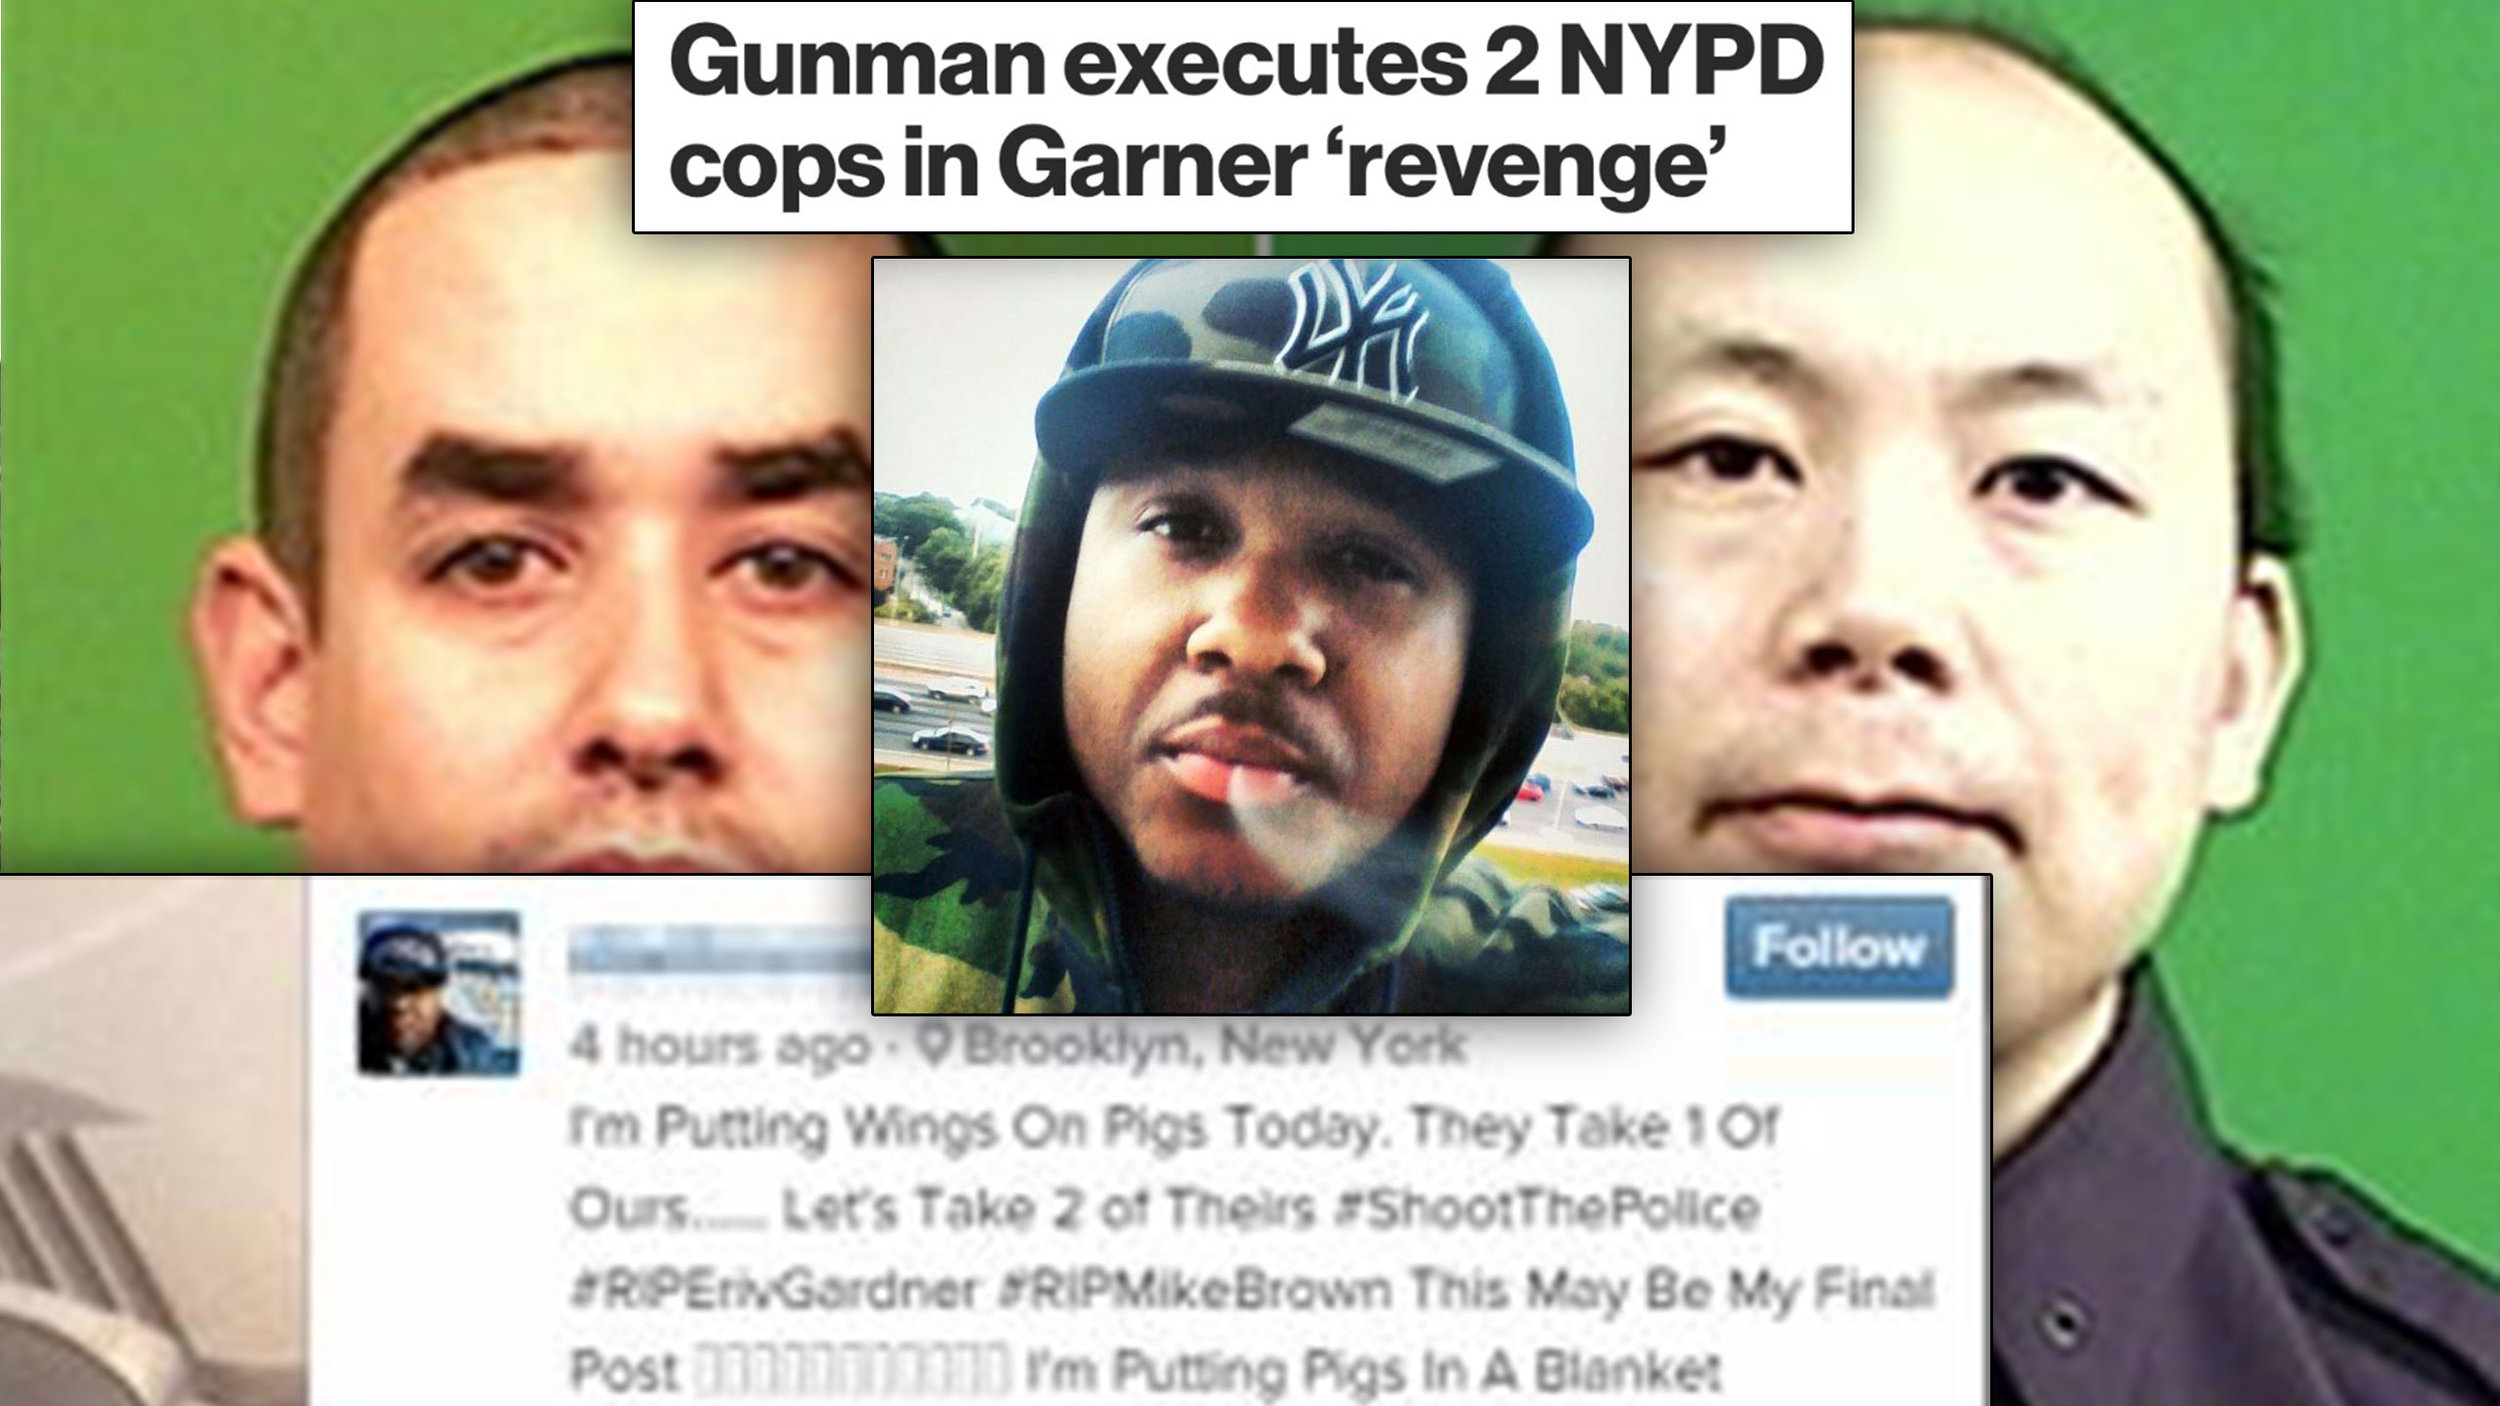 "NY Post  headline from Dec. 2014: ""Gunman executes 2 NYPD cops in Garner 'revenge'."" The cop killer's Instagram post said, ""I'm putting wings on pigs today. They take 1 of ours… Let's take 2 of theirs. #ShootThePolice #RIPEricGarner #RIPMikeBrown … I'm putting pigs in a blanket."""